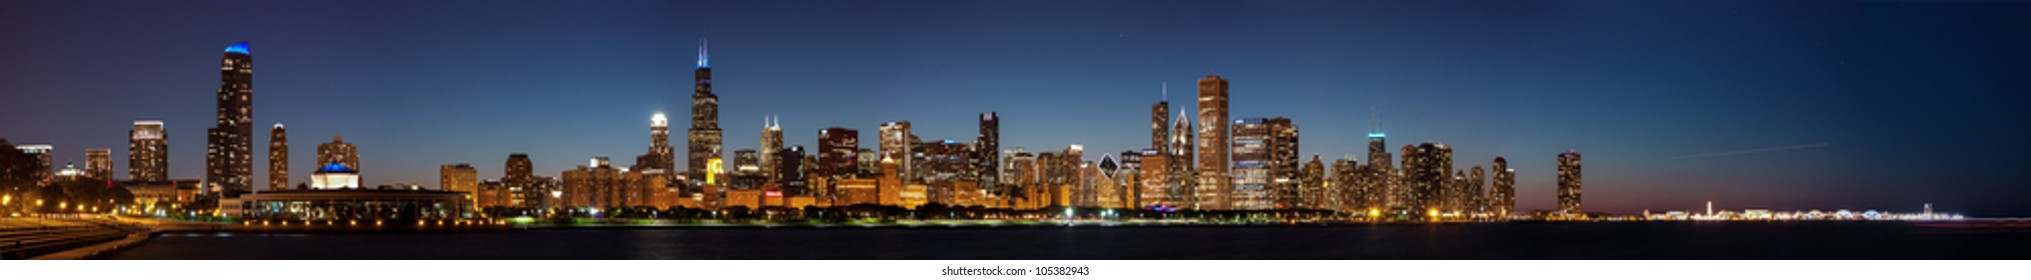 Panoramic view of the Chicago Skyline at Night including the Pier